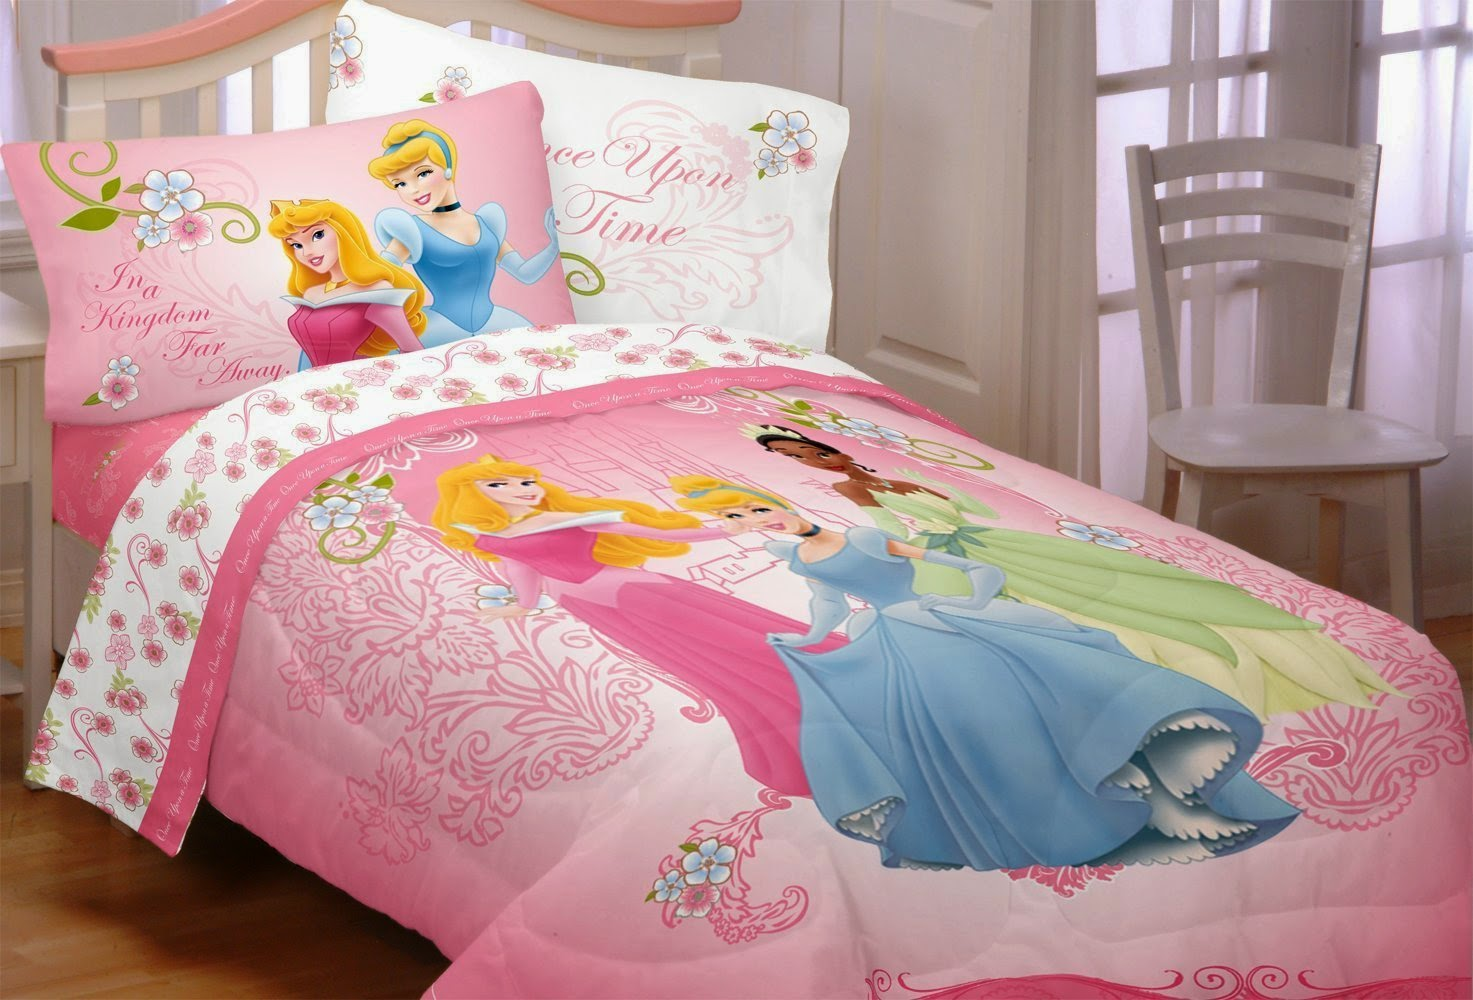 Elegant How To Decorate A Disneyu0027s Princess Aurora Themed Bedroom (Sleeping Beauty)